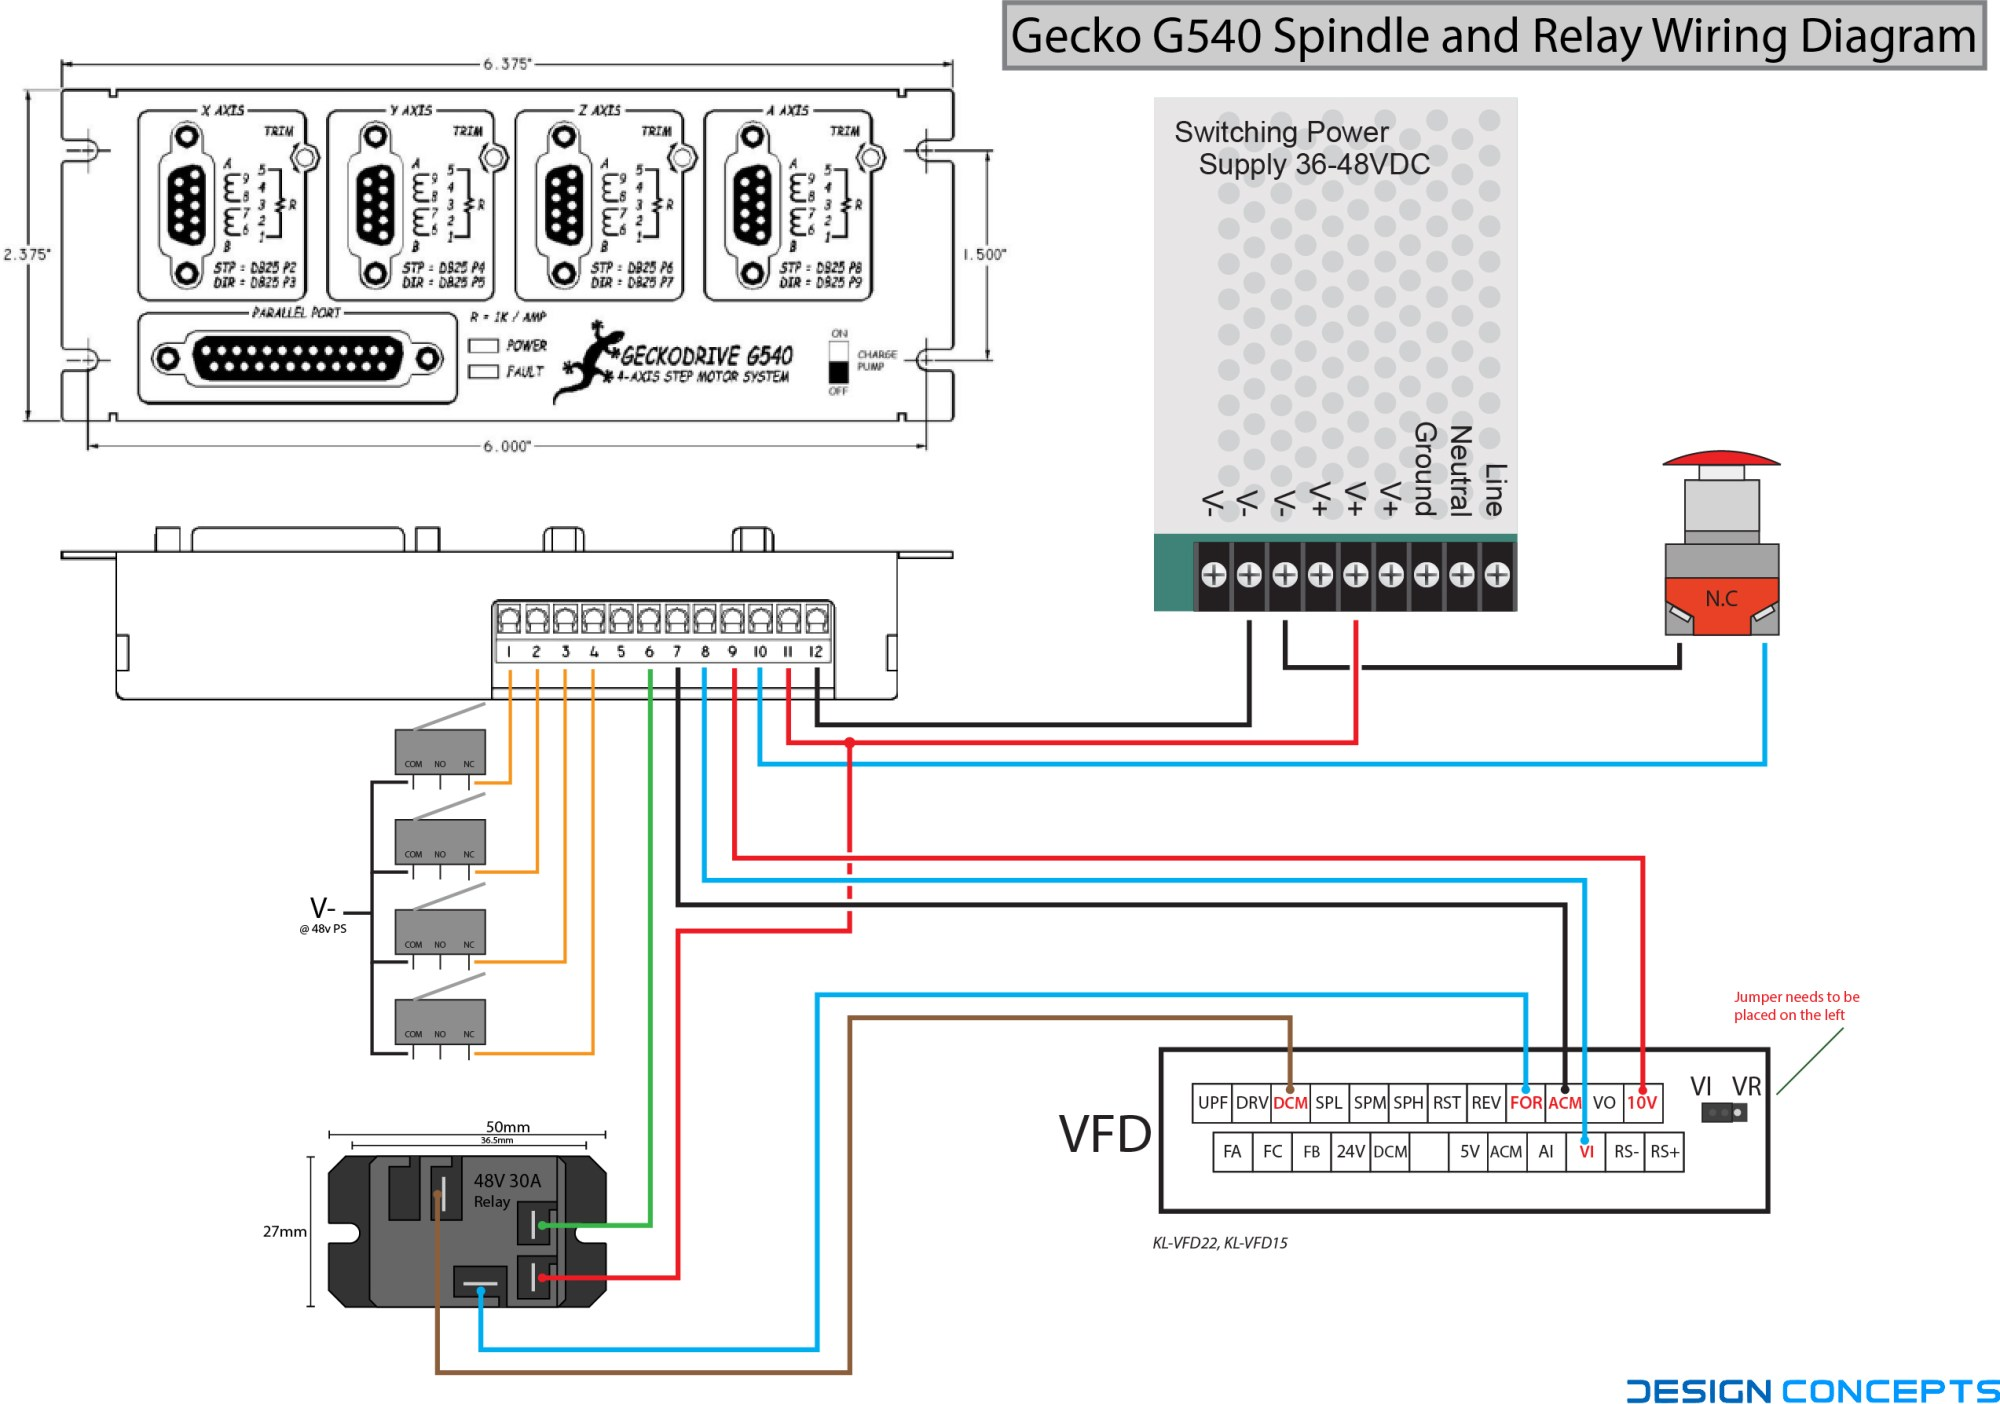 Control 4 Relay Wiring - control relay wiring diagram for ... on